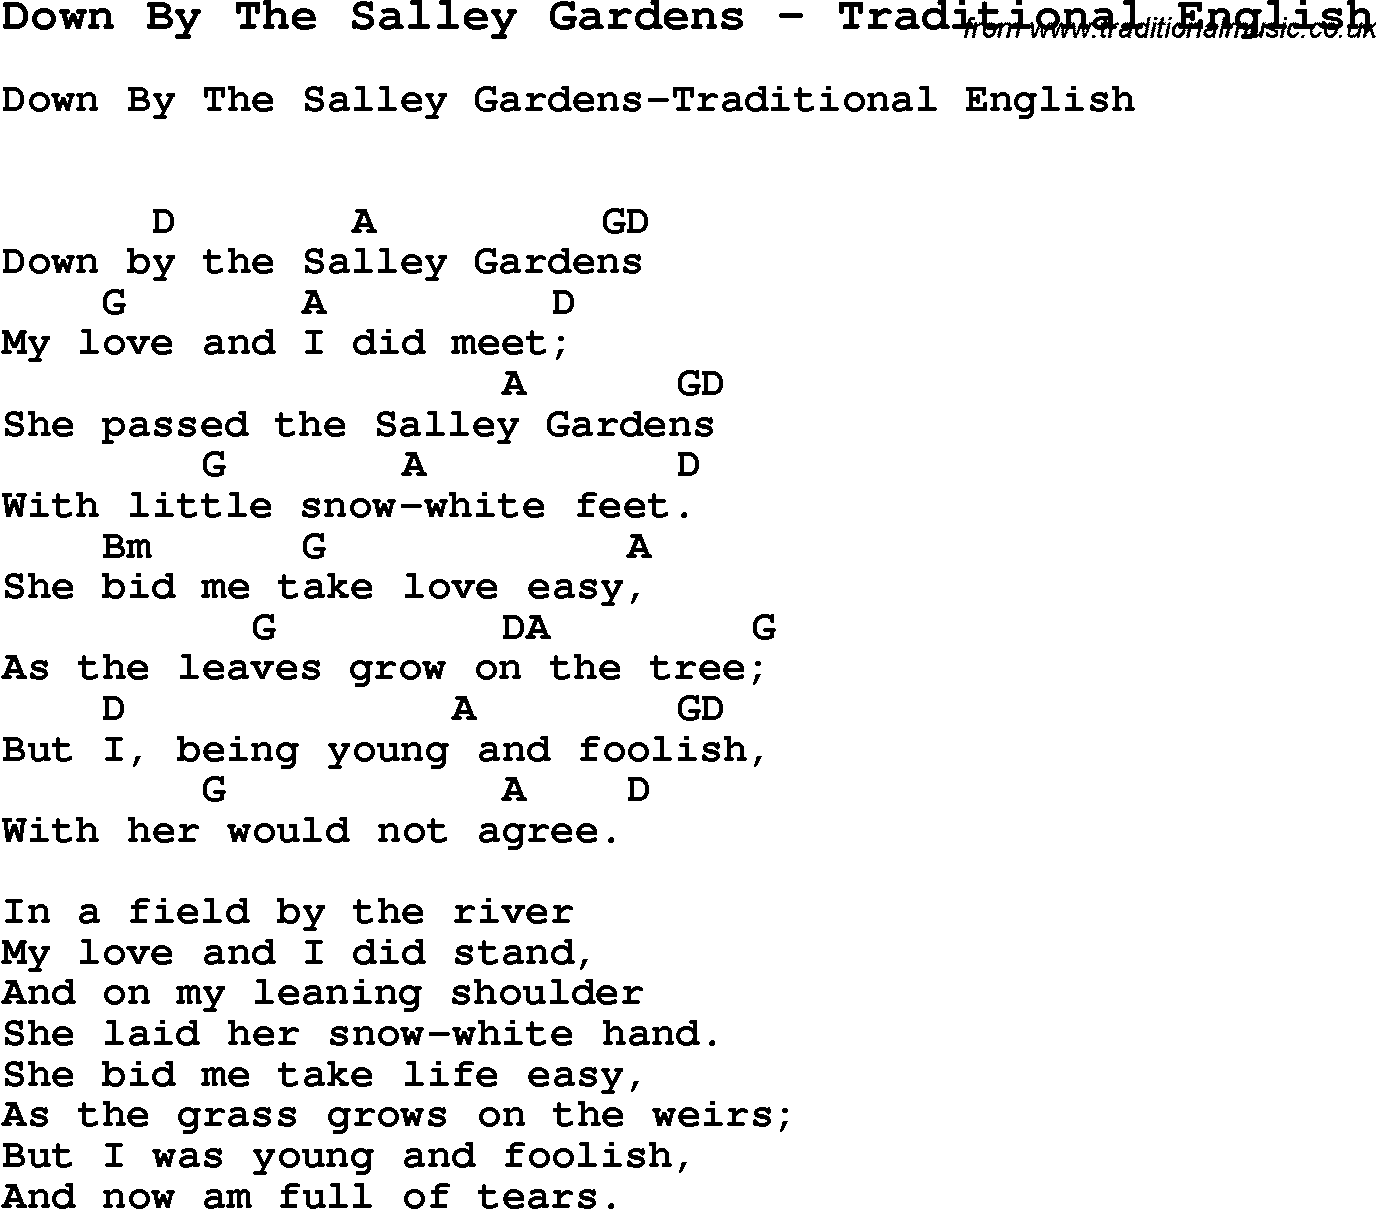 Song Down By The Salley Gardens By Traditional English Song Lyric